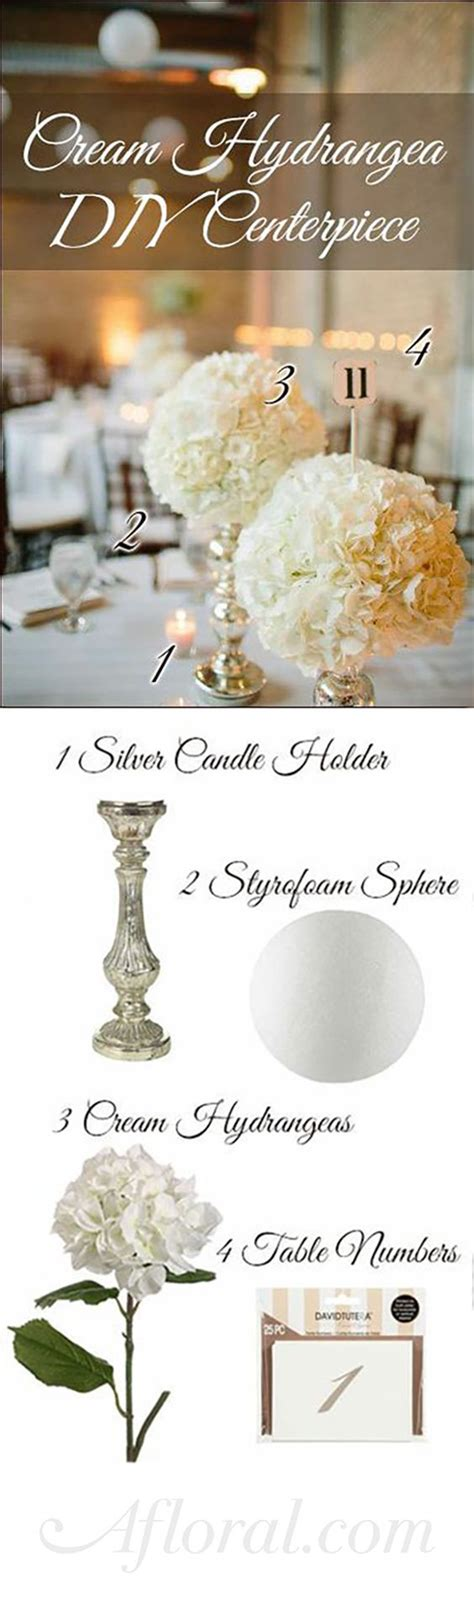 how to make your own wedding centerpieces affordable wedding centerpieces original ideas tips diys